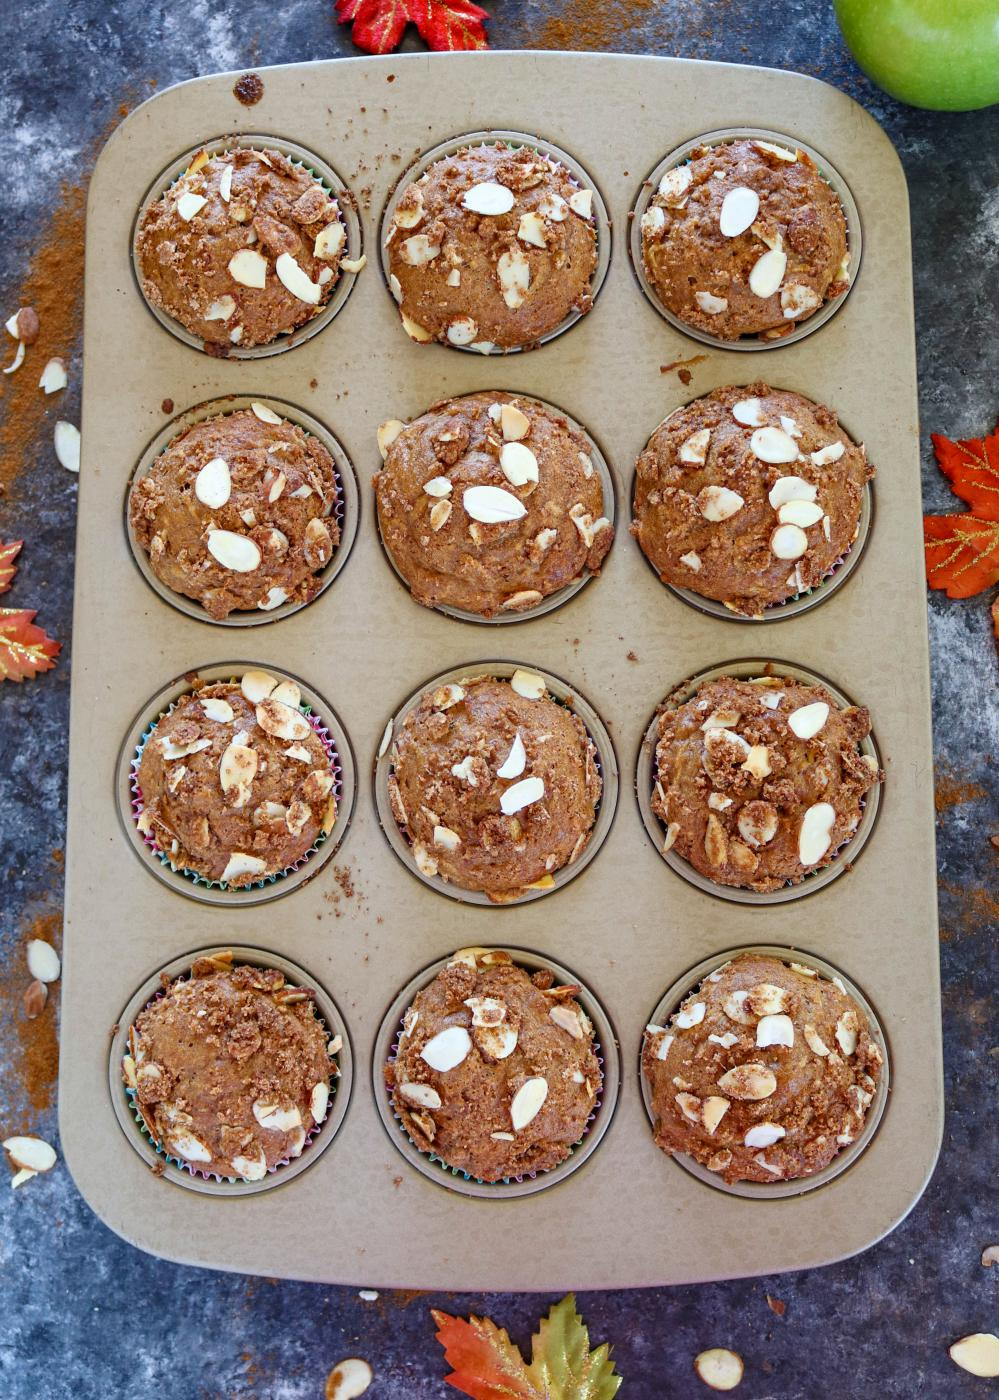 Perfectly  baked Muffins in a tray